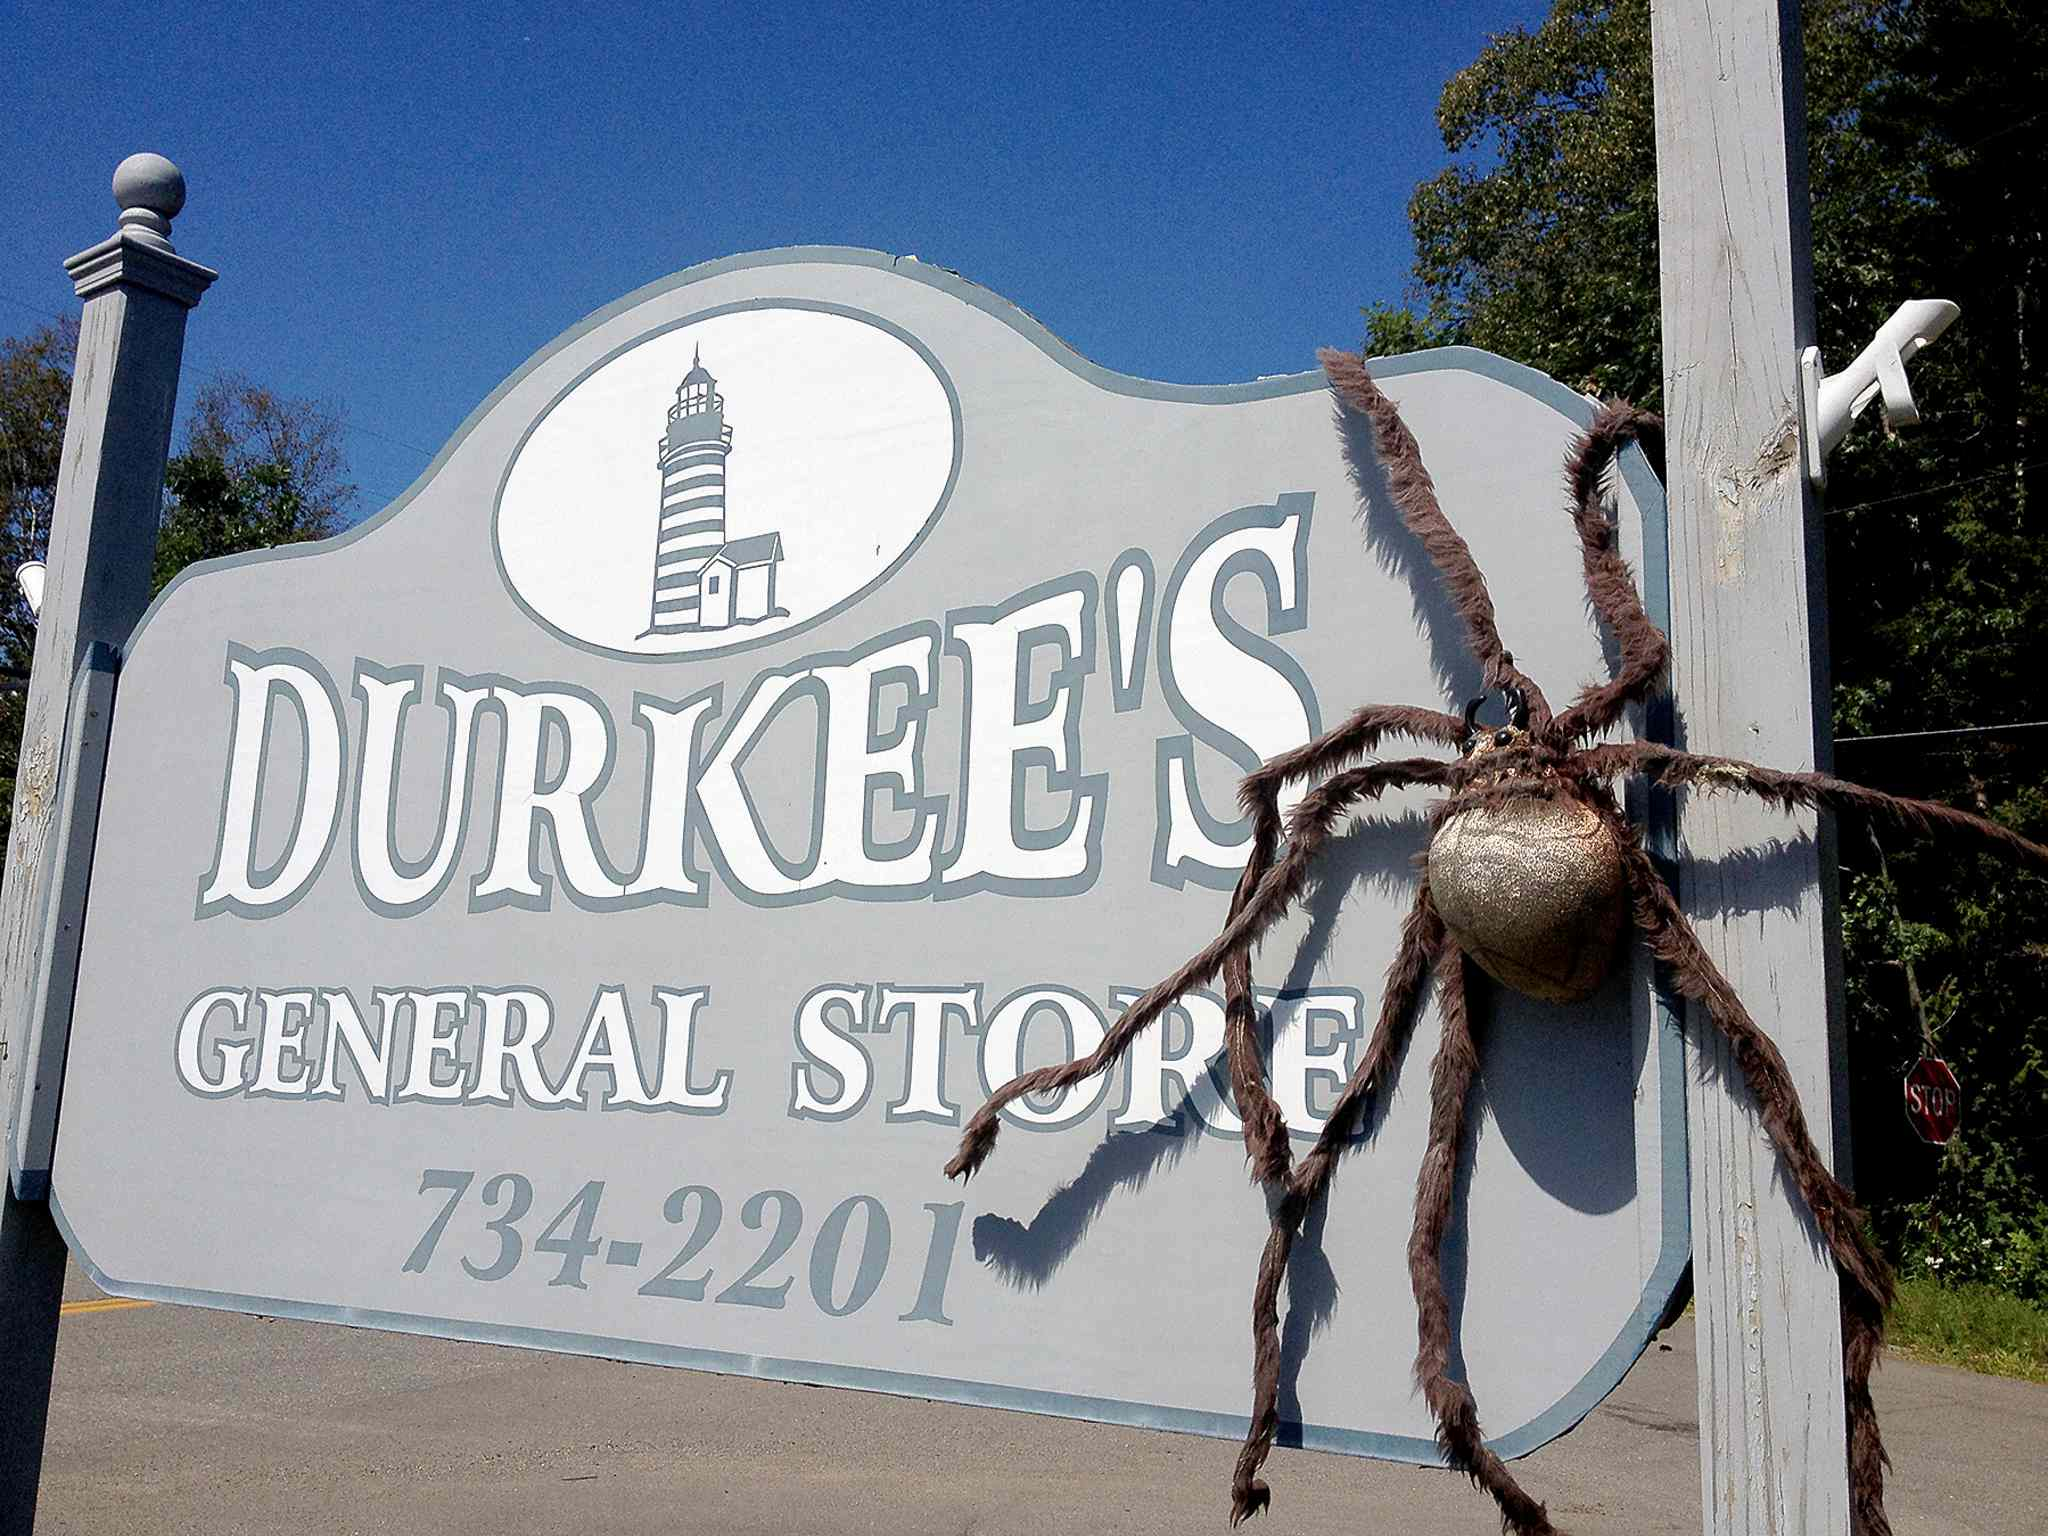 Durkee's General Store in Islesboro promotes the tale of the up-island spider, which is said to live in the area.